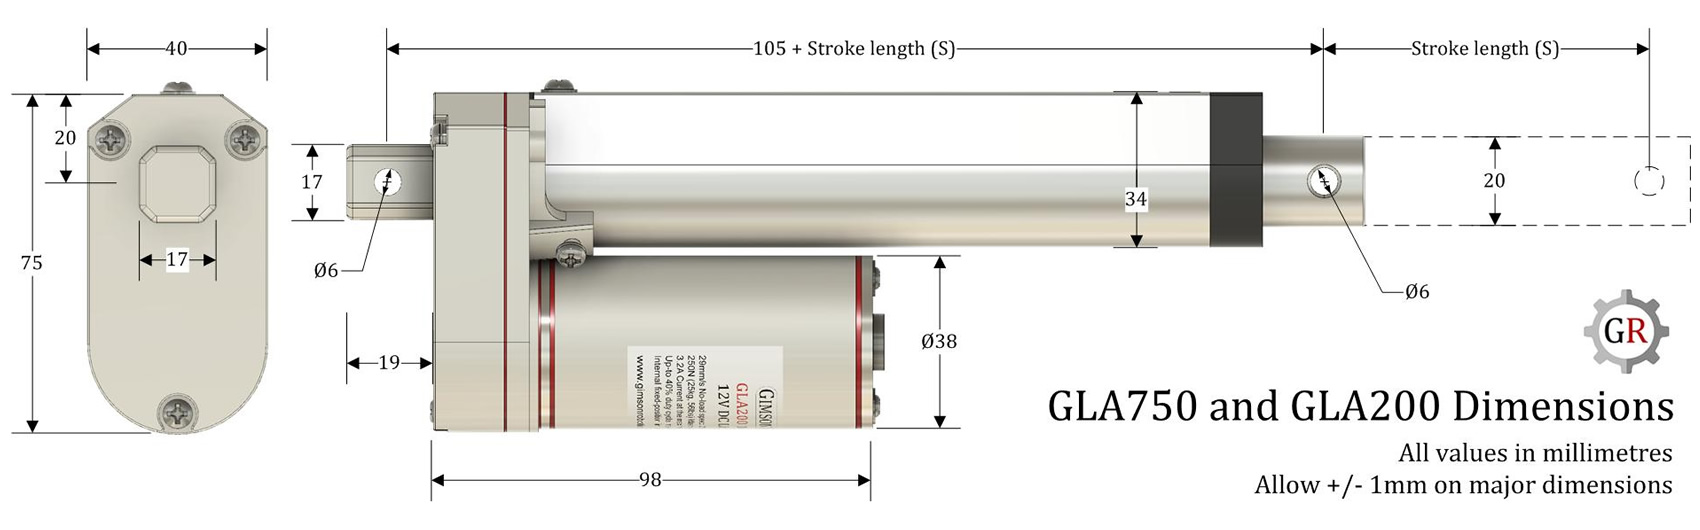 hight resolution of gla750 actuator dimensions installation length